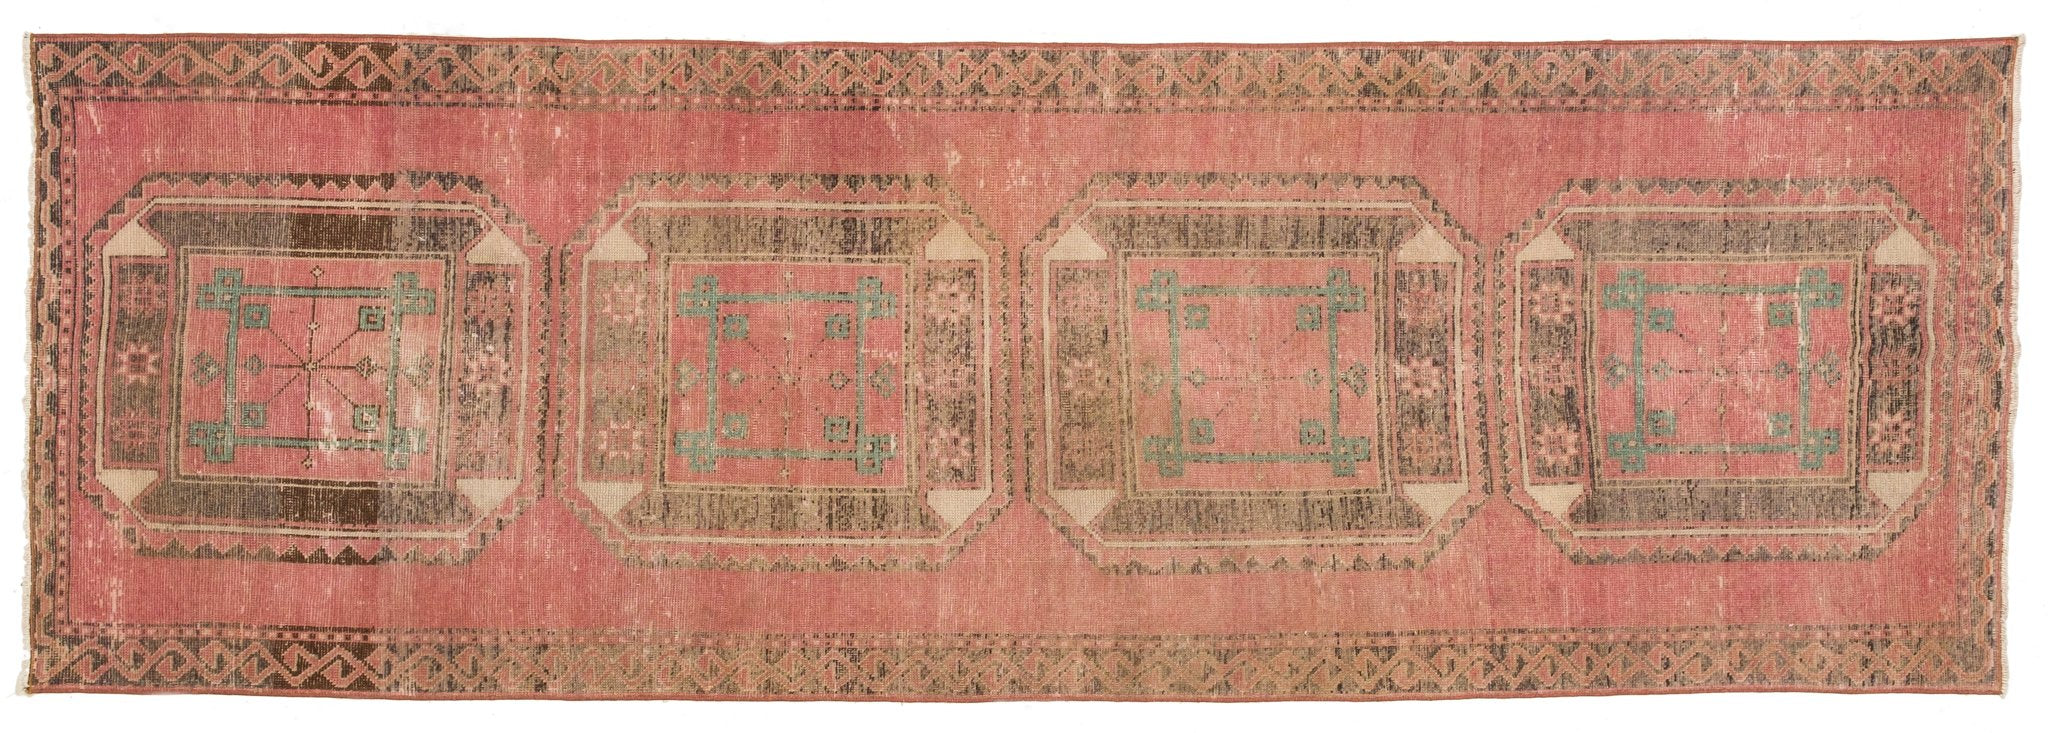 Vintage Turkish Runner Rug Alberte